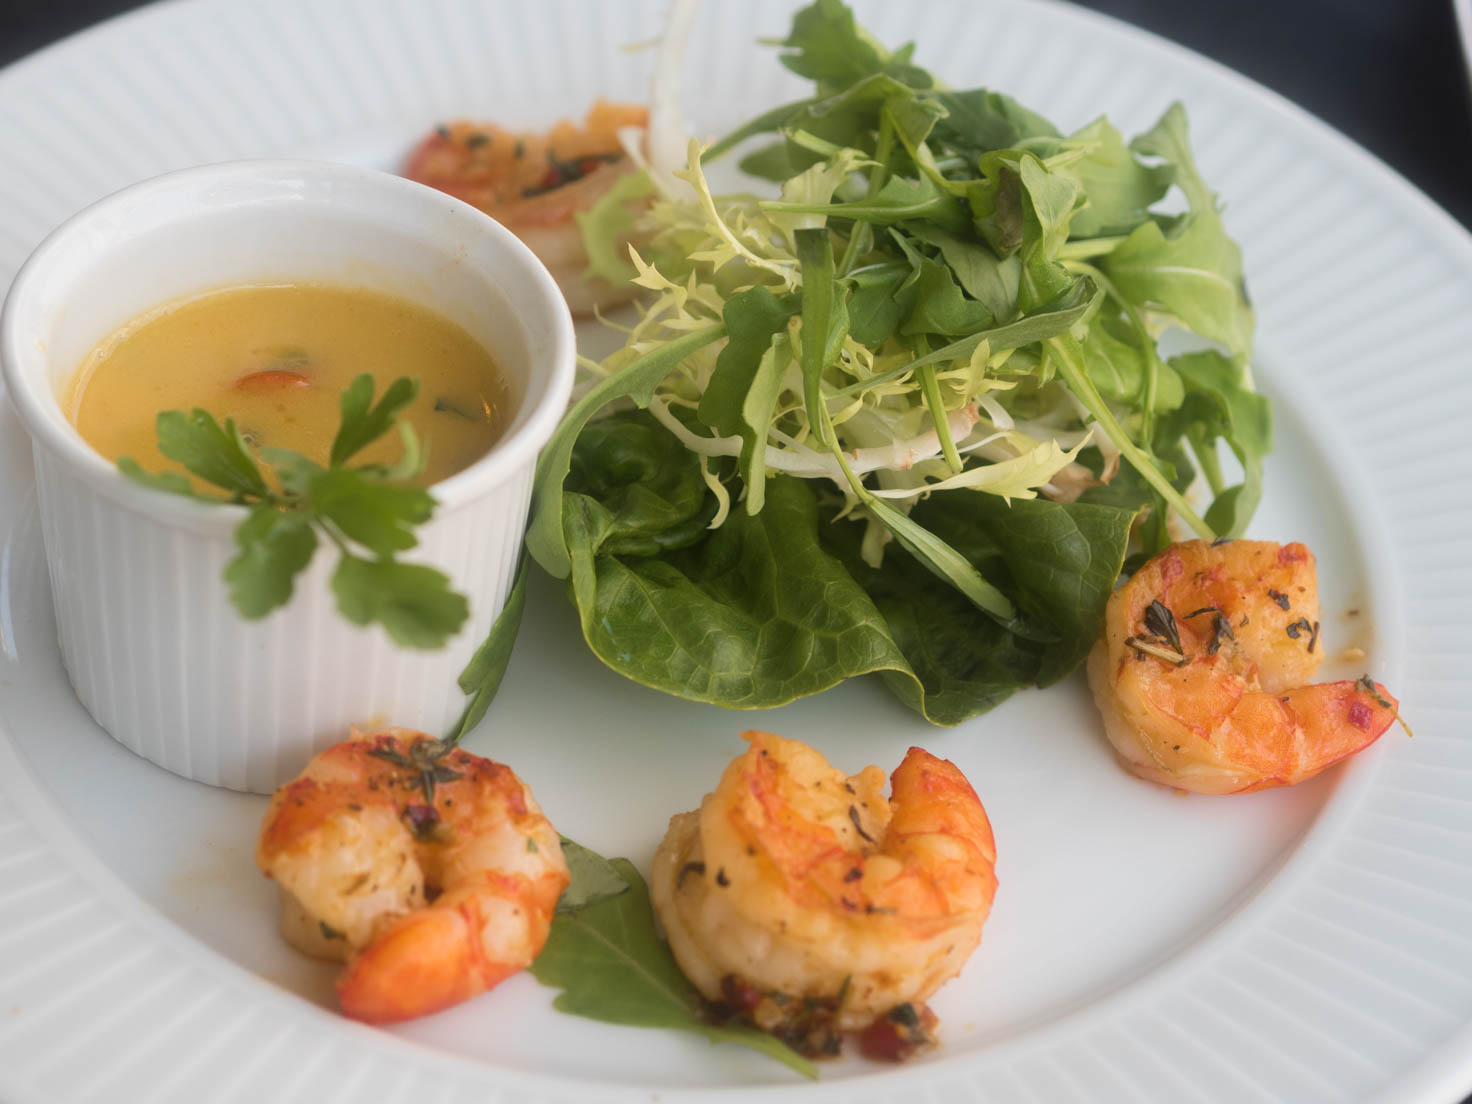 Grilled prawns with green salad and mustard and lemon dressing